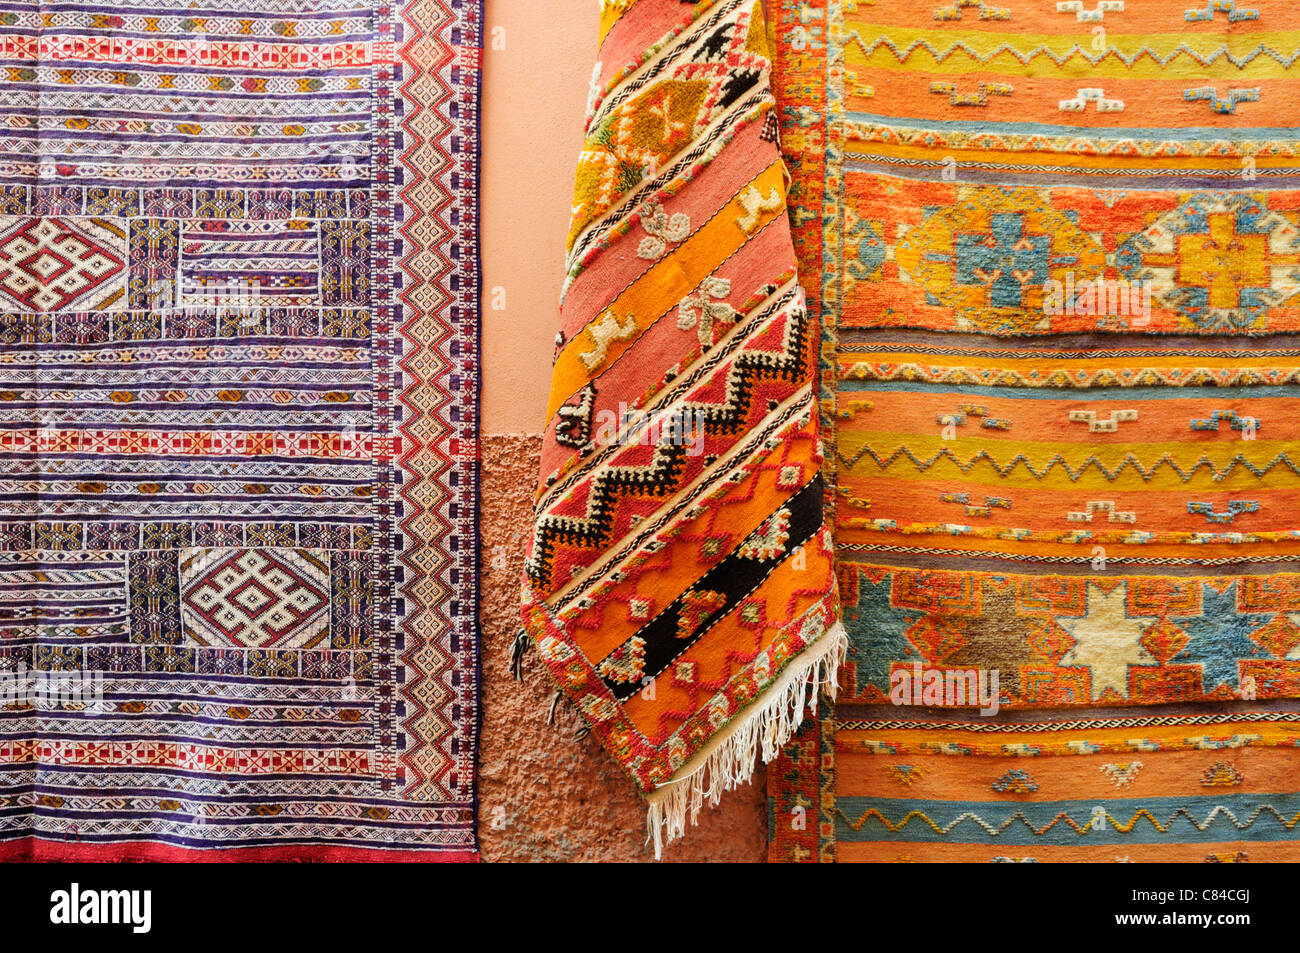 Carpets for Sale in The Medina, Marrakech, Morocco - Stock Image